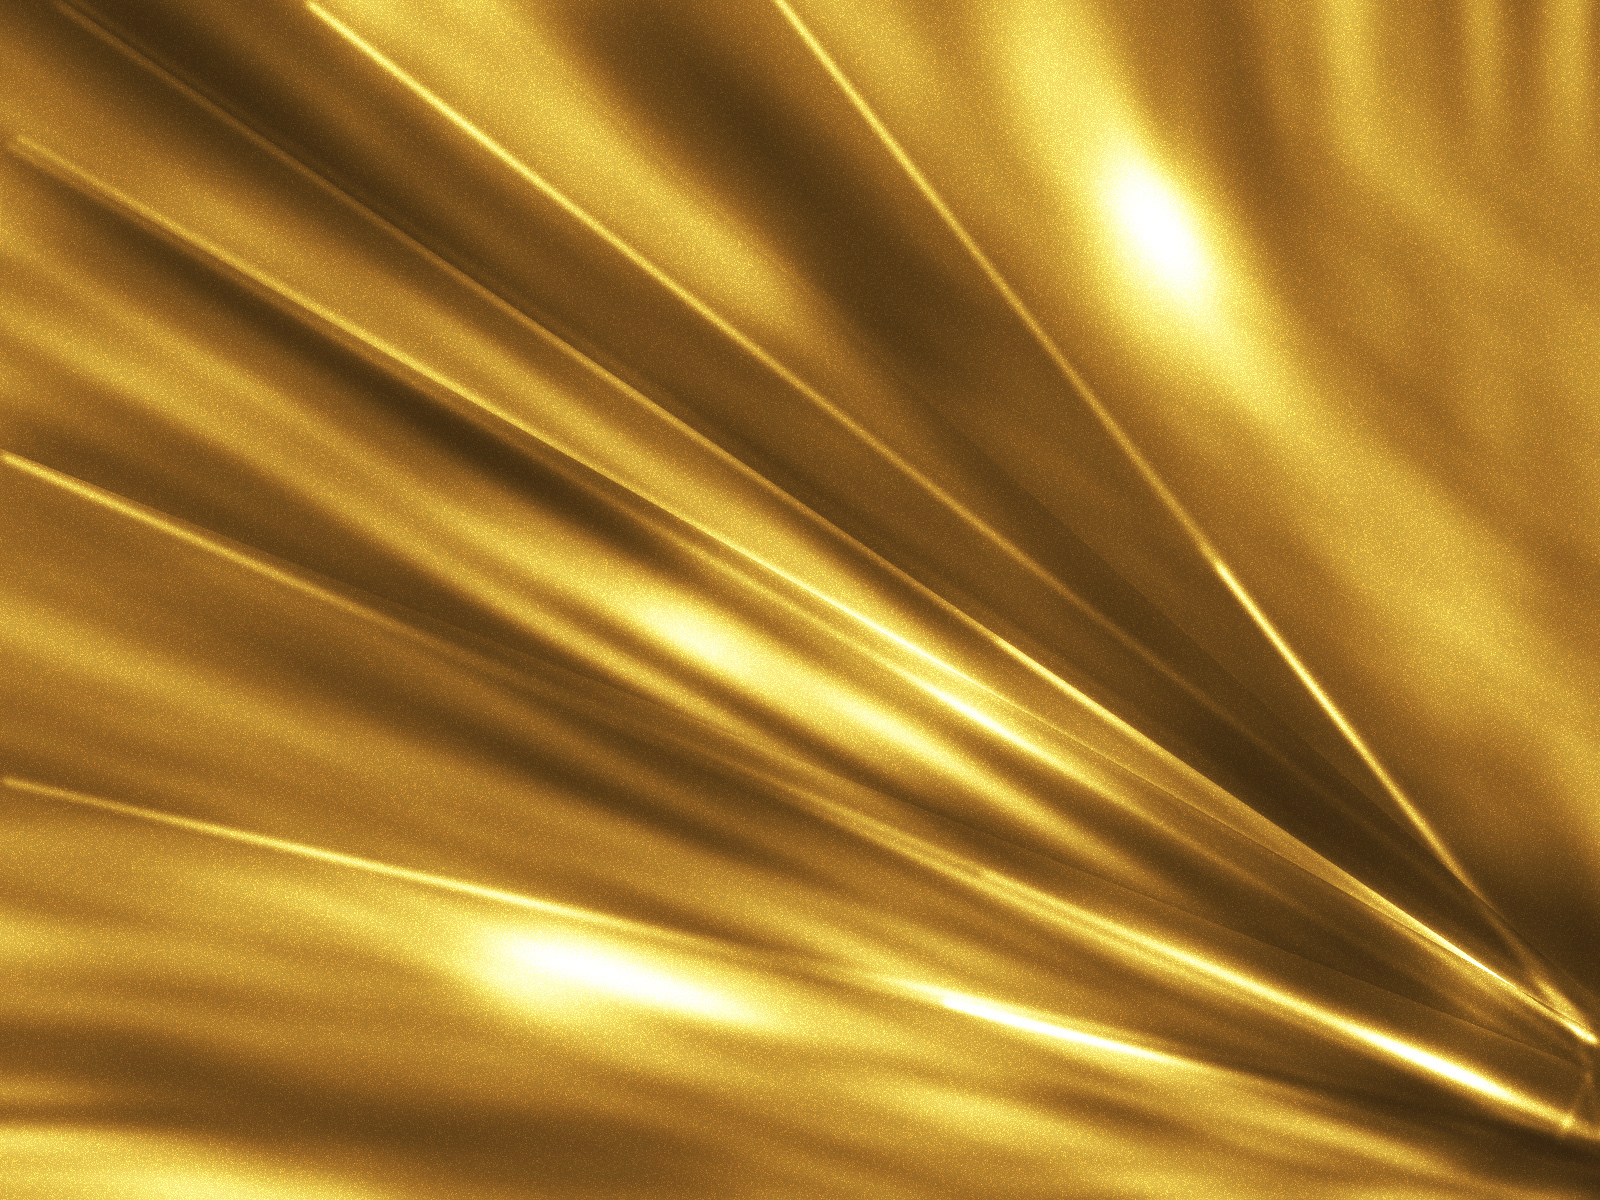 Live Falls Wallpaper Free Download Download Shiny Gold Wallpaper Gallery